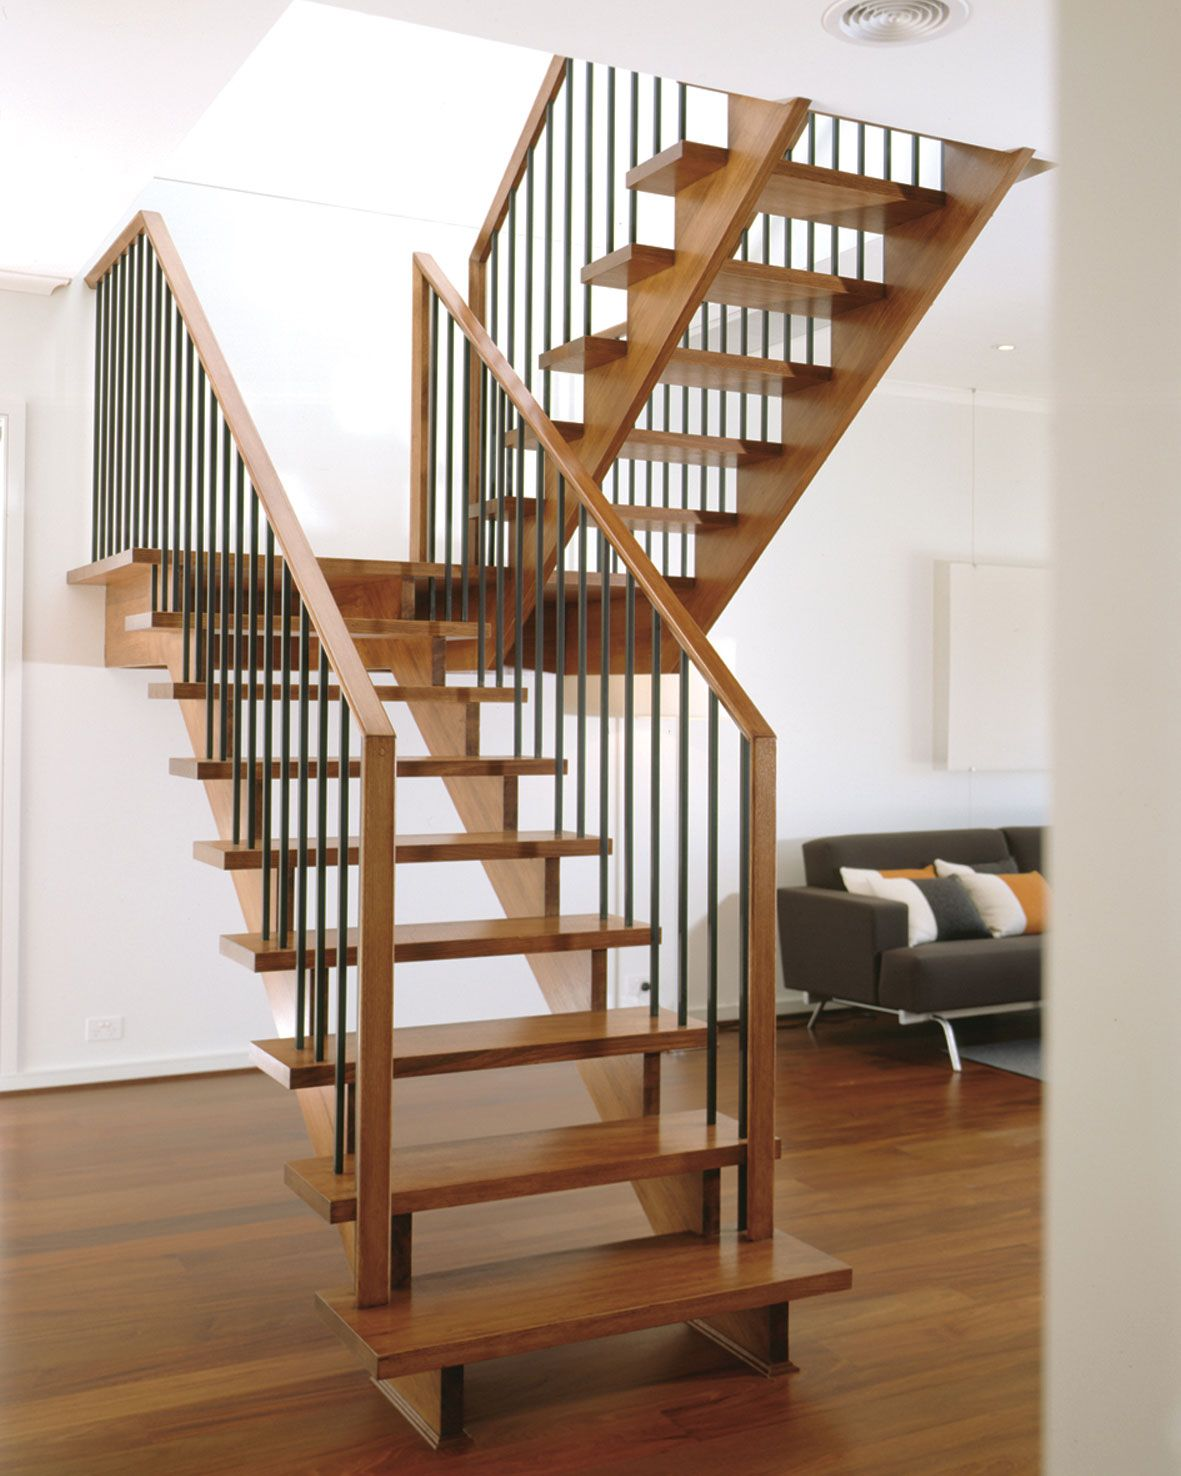 Interior Staircase Designs Stunning Staircase Designs In Home Interior With Wooden